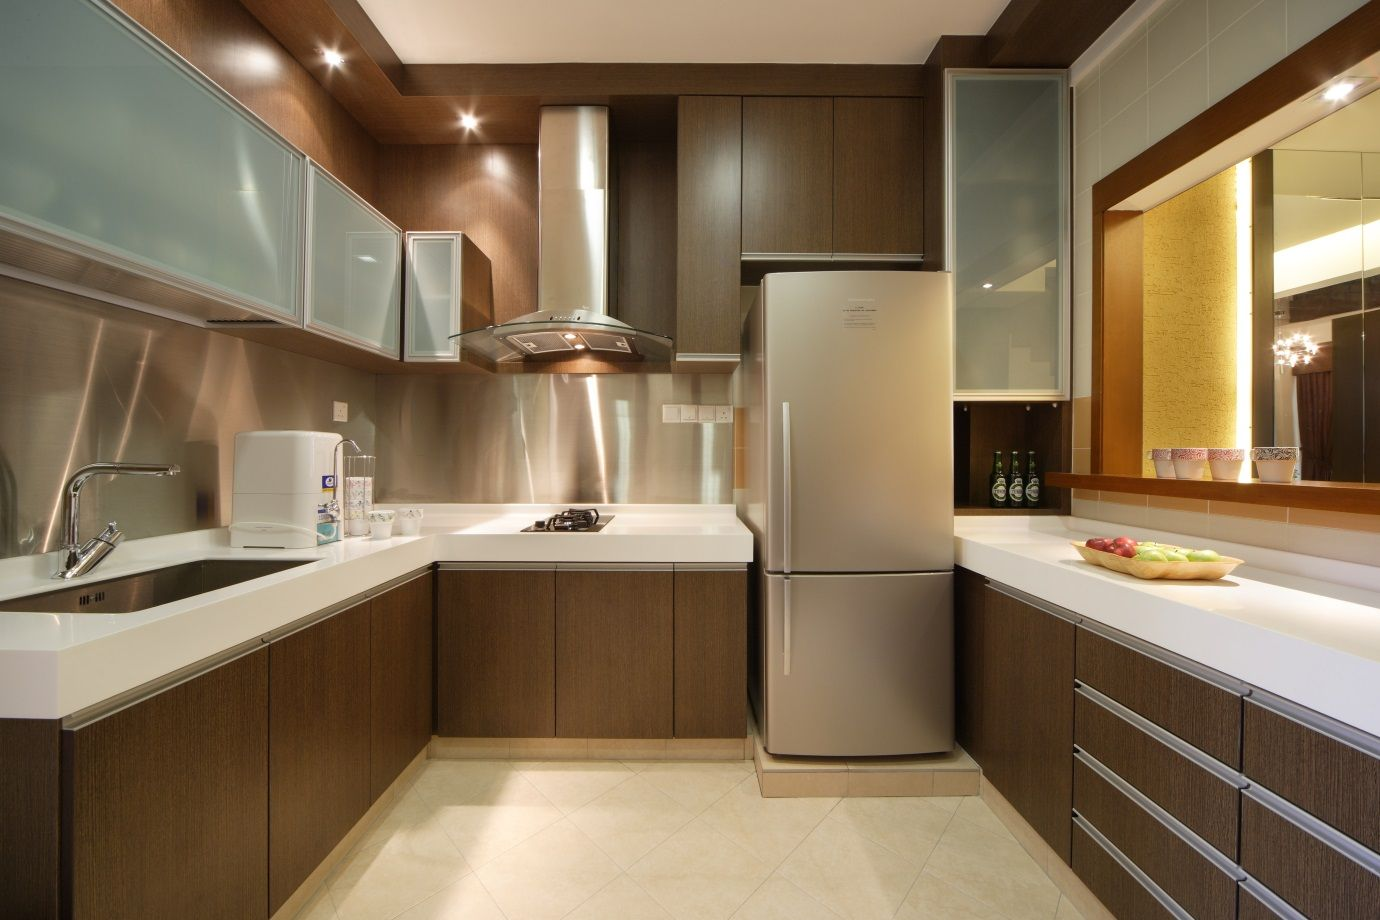 Malaysia modern kitchen cabinet design google search for Kitchen interior design pictures